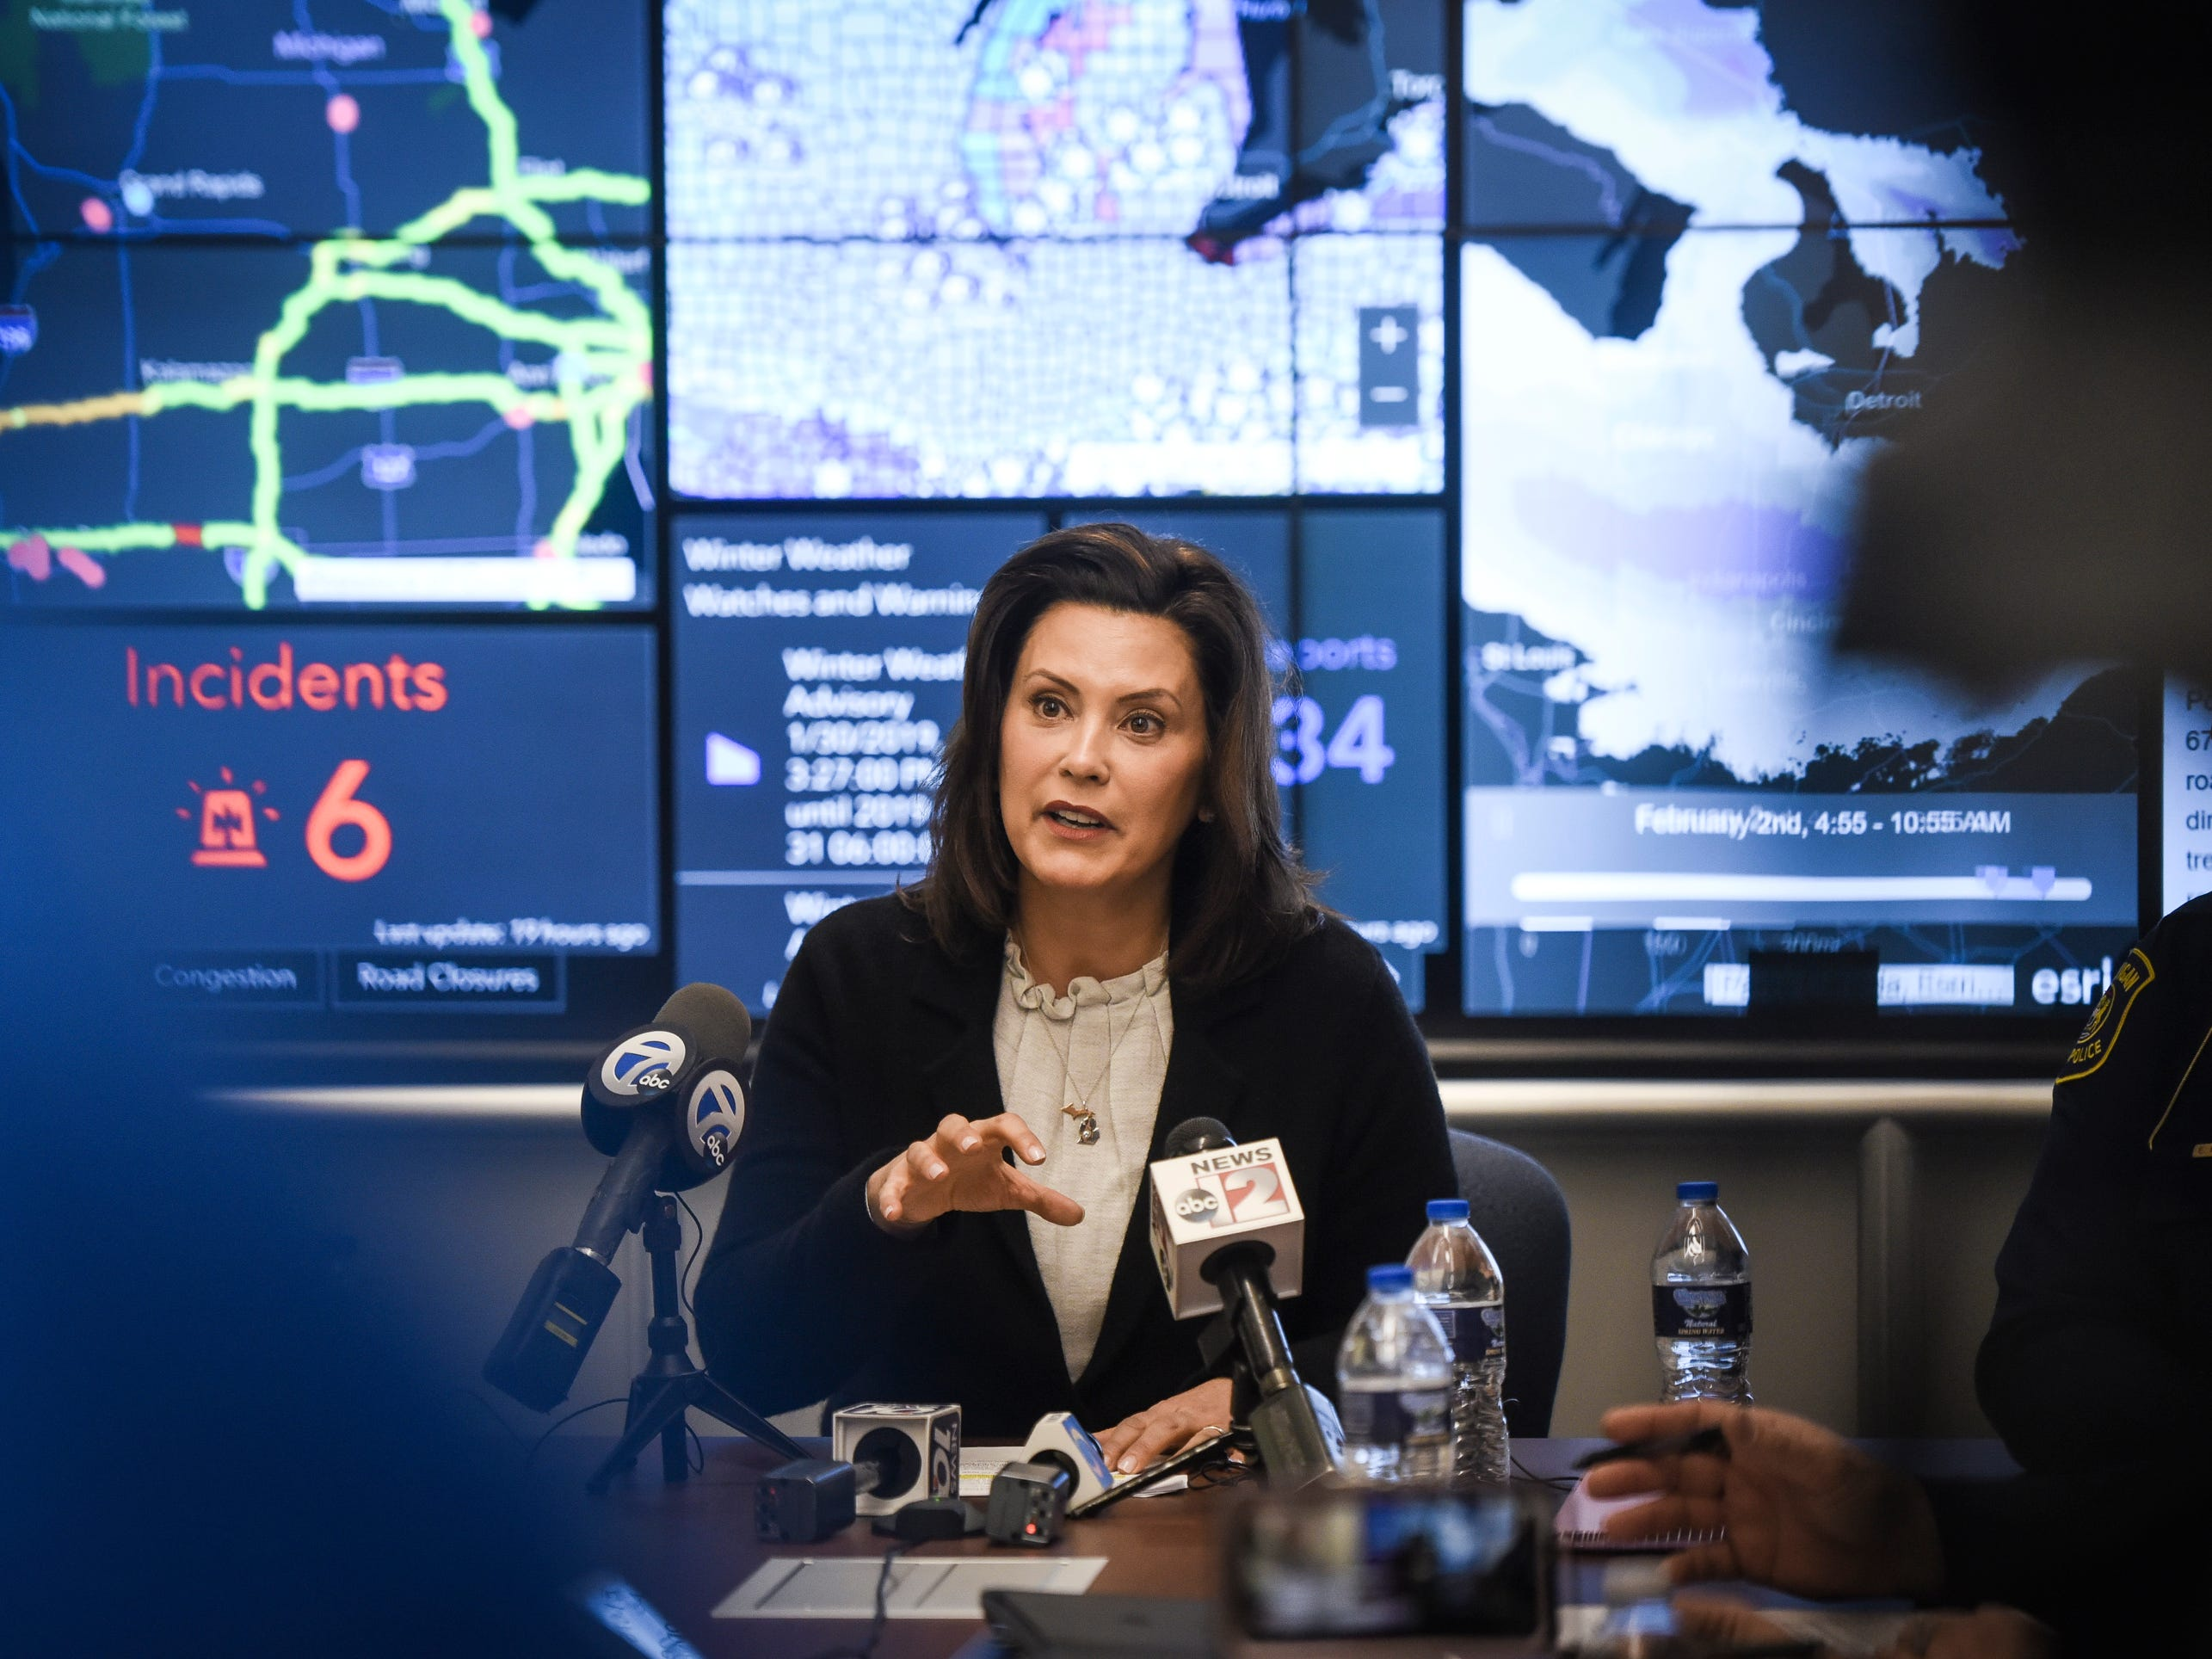 Michigan Governor Gretchen Whitmer speaks to the press Thursday, Jan. 31, 2019, at the State Emergency Operations Center at the Michigan State Police headquarters in Dimondale.  Whitmer talked about the state's response to the polar vortex and deadly windchills.  [USA Today Network/Matthew Dae Smith/Lansing State Journal]